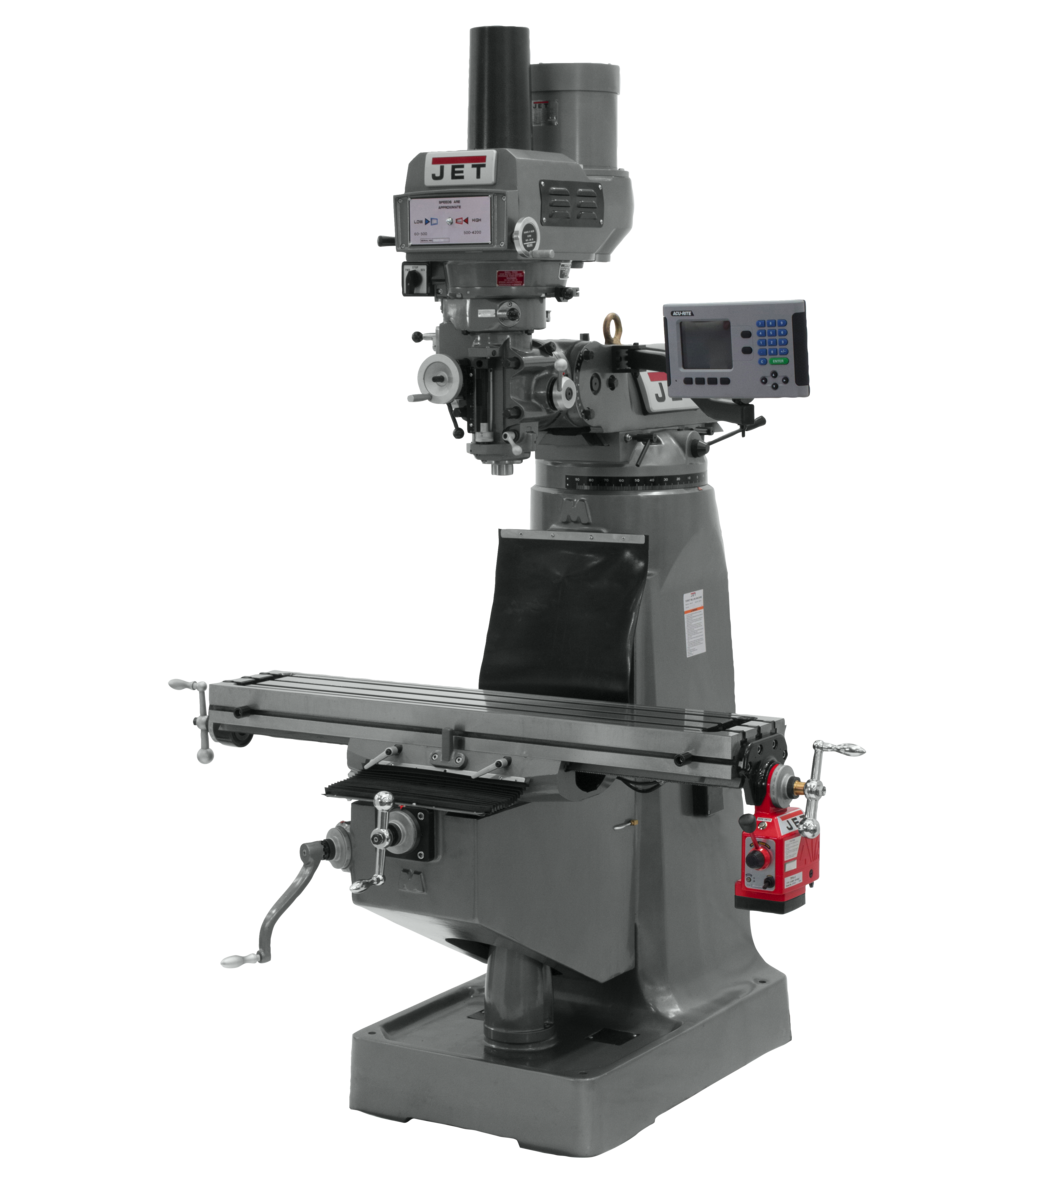 JTM-4VS Mill With 3-Axis ACU-RITE 203 DRO (Quill) With X-Axis Powerfeed and Power Draw Bar